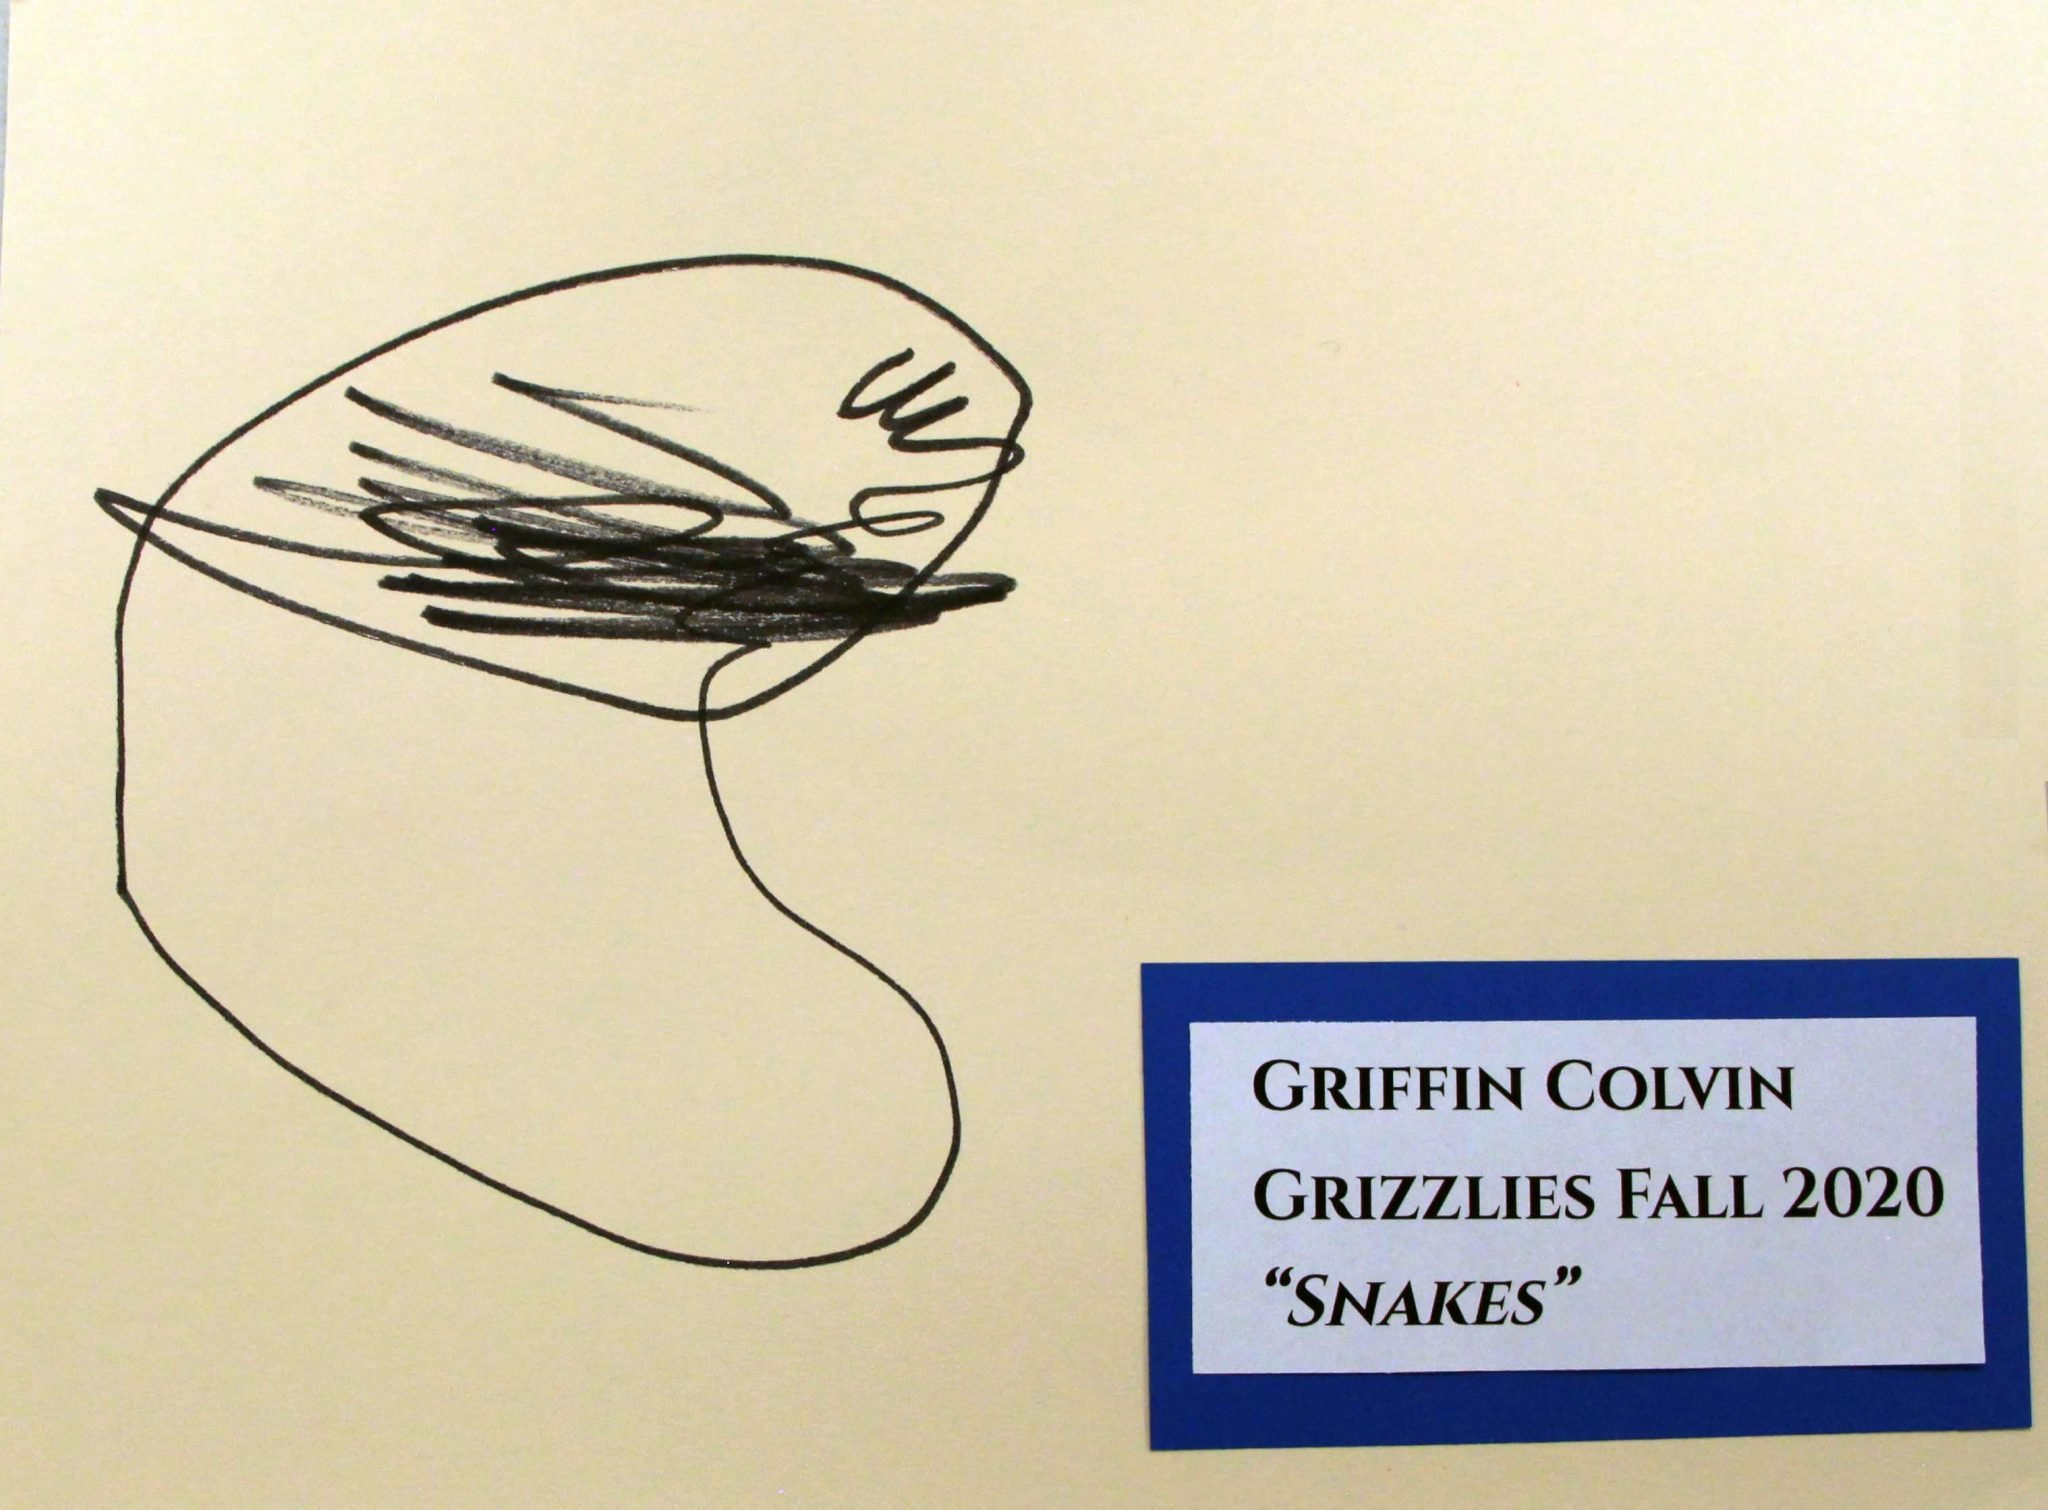 Griffin Colvin, of Grizzlies group, drawing, Fall 2020